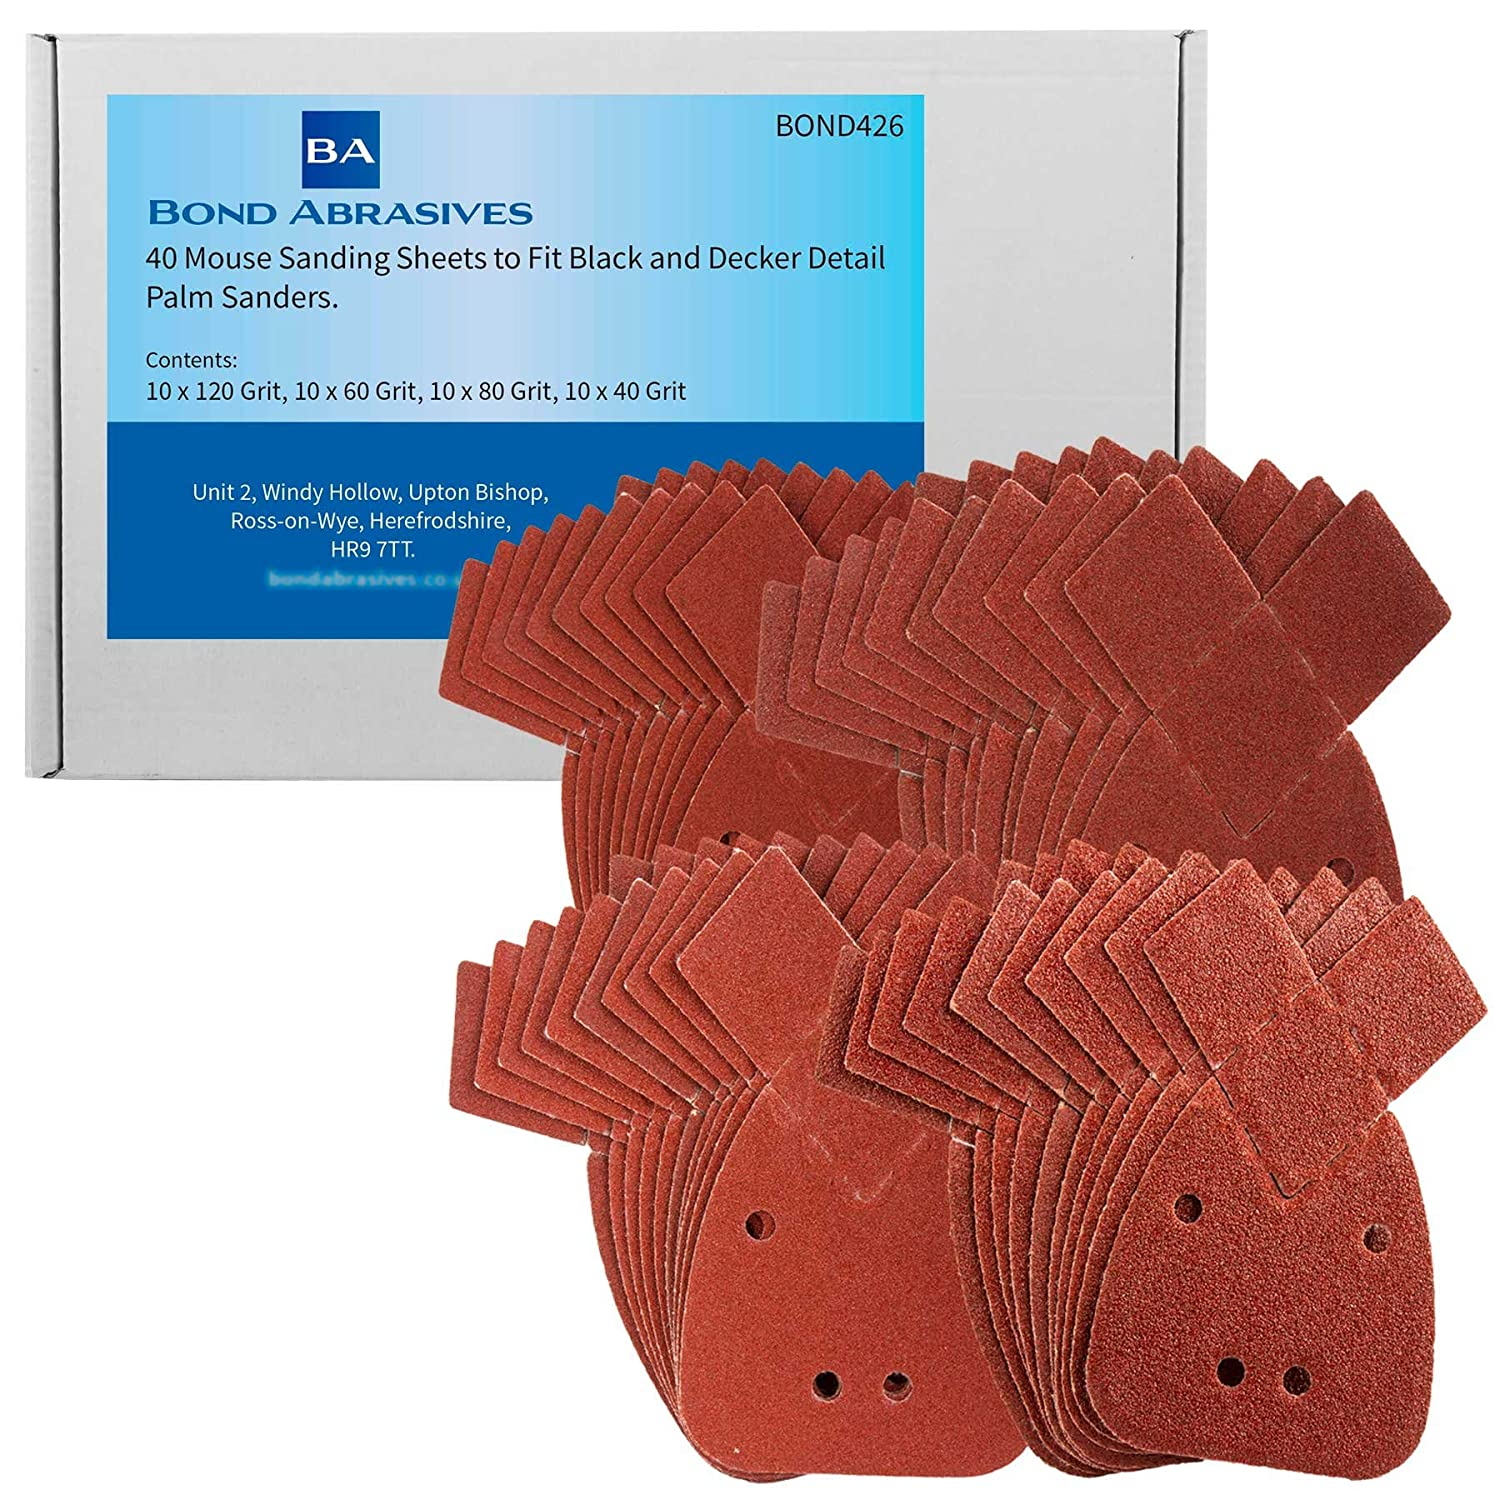 40 Bond Abrasives Mouse Sanding Sheets to Fit Black and Decker Detail Palm Sander All Grades